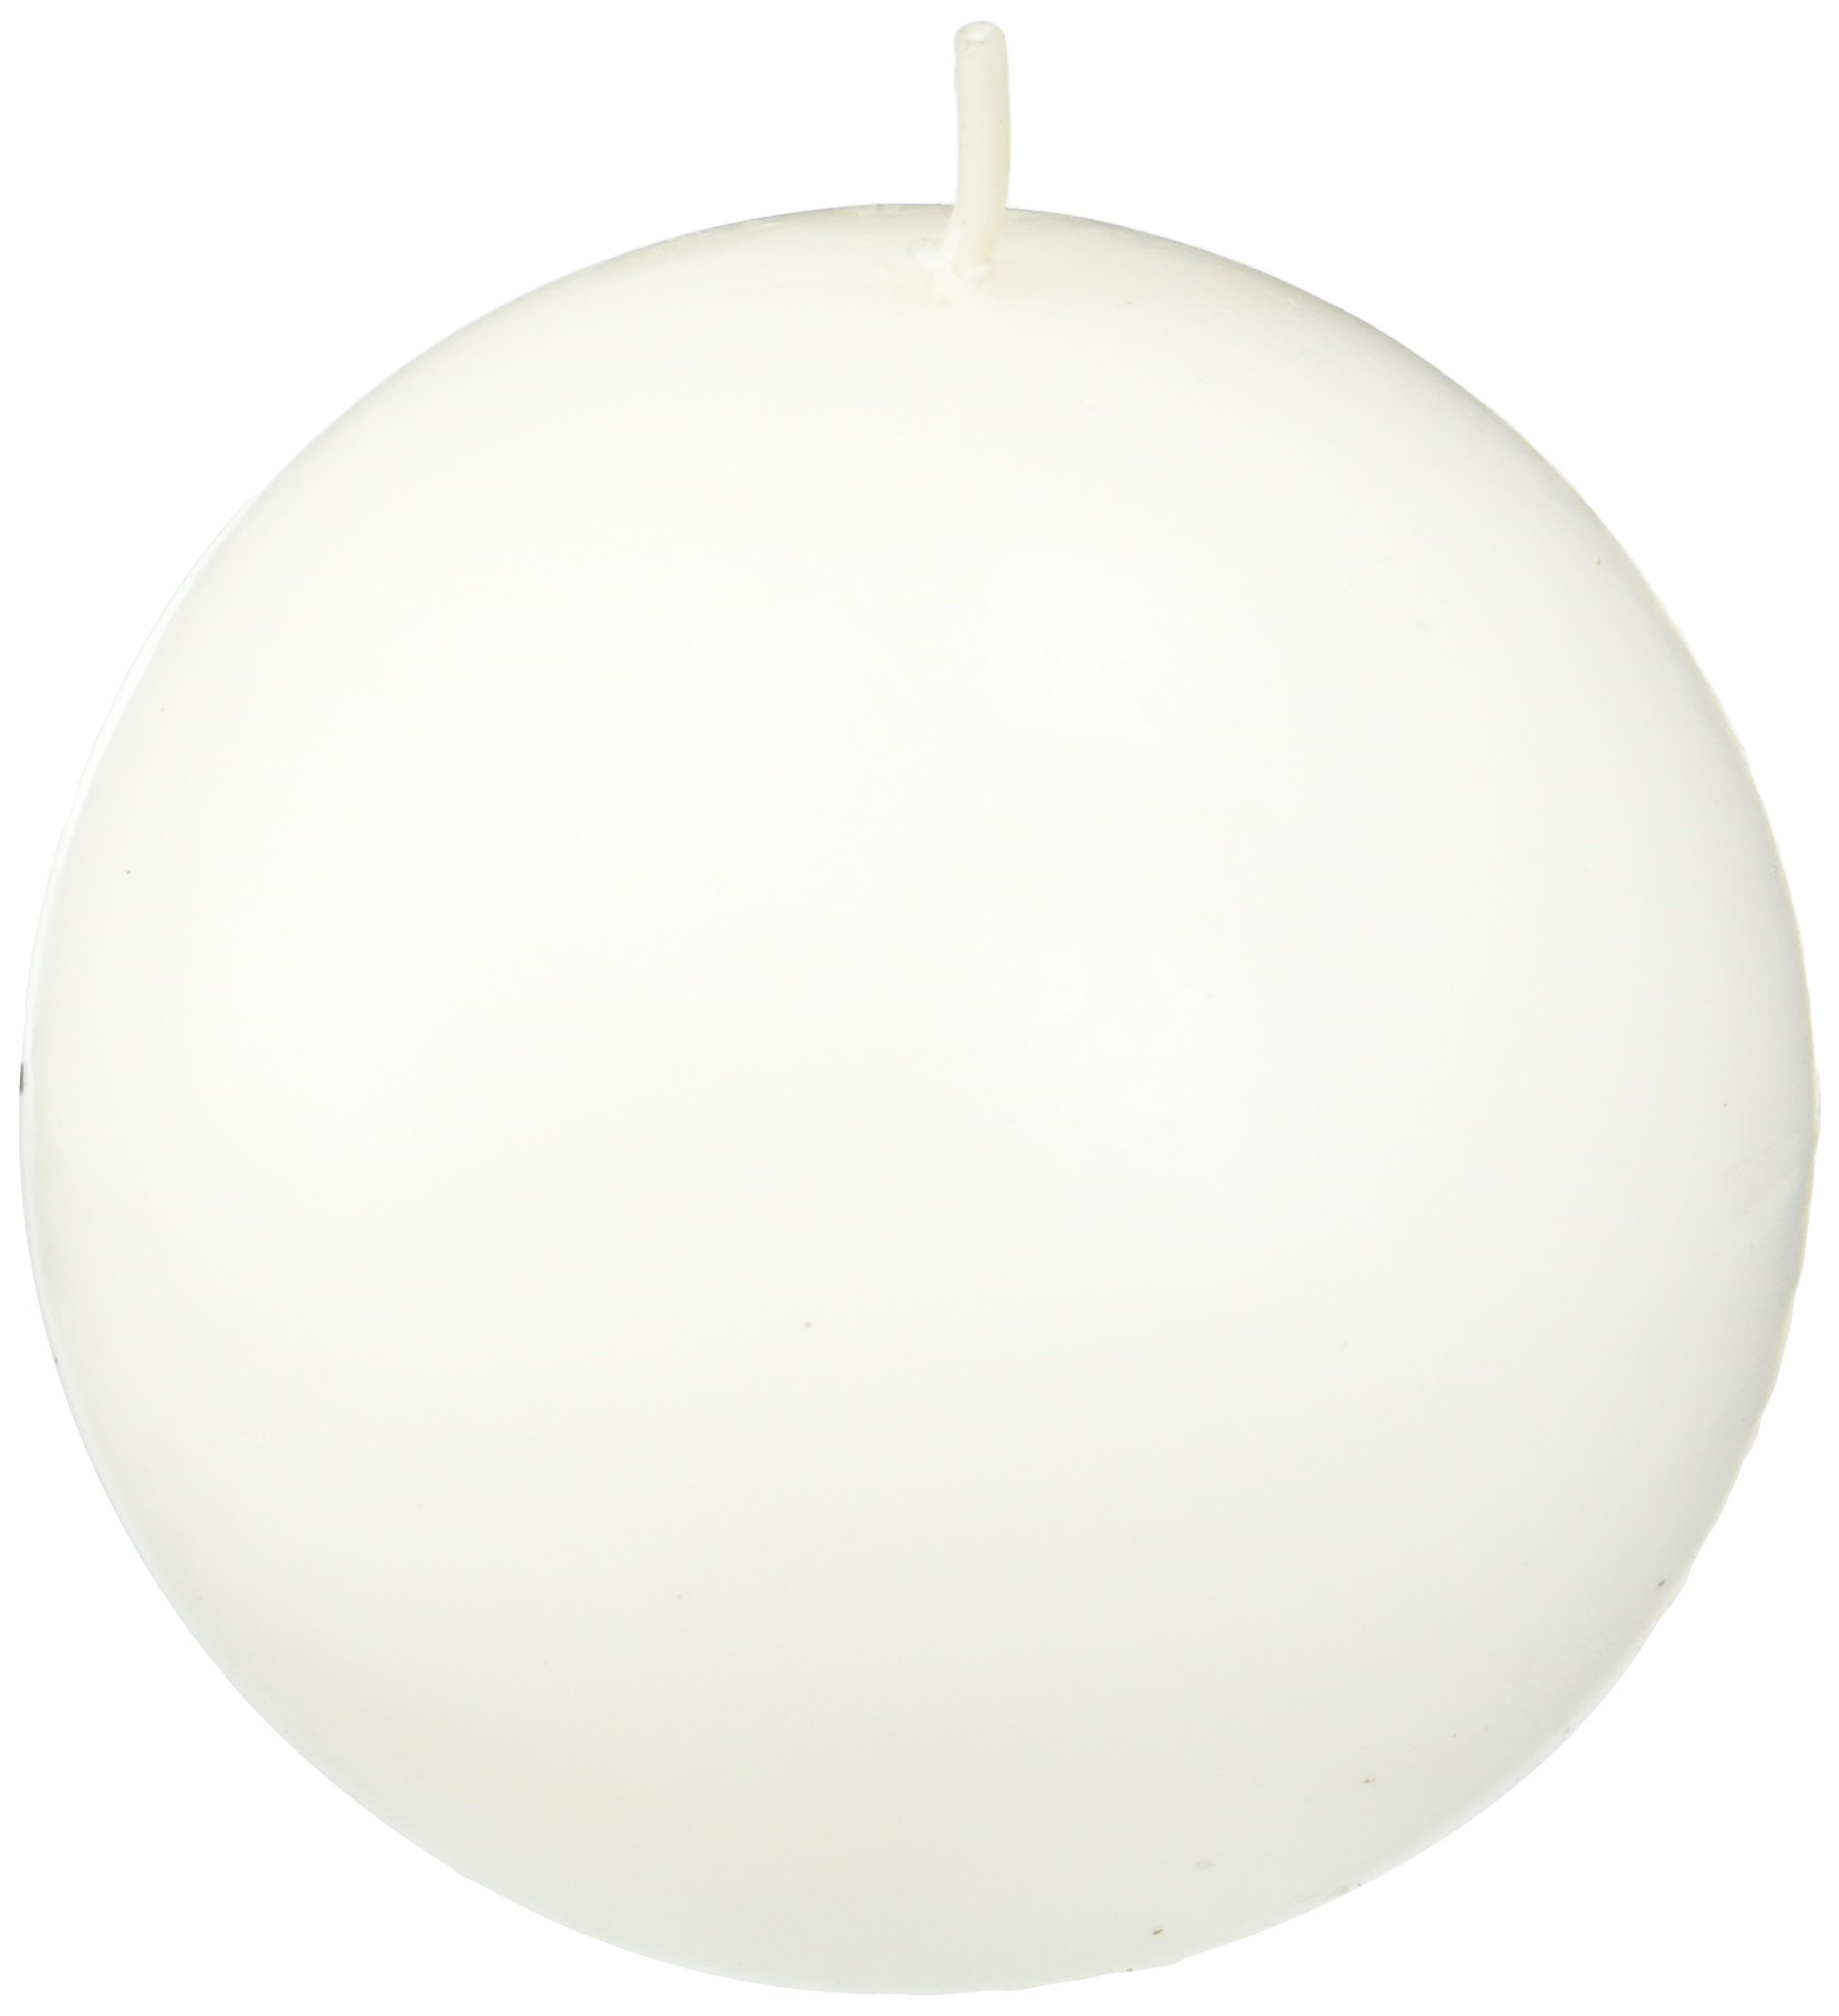 Zest Candle 6-Piece Ball Candles, 3-Inch, White Citronella